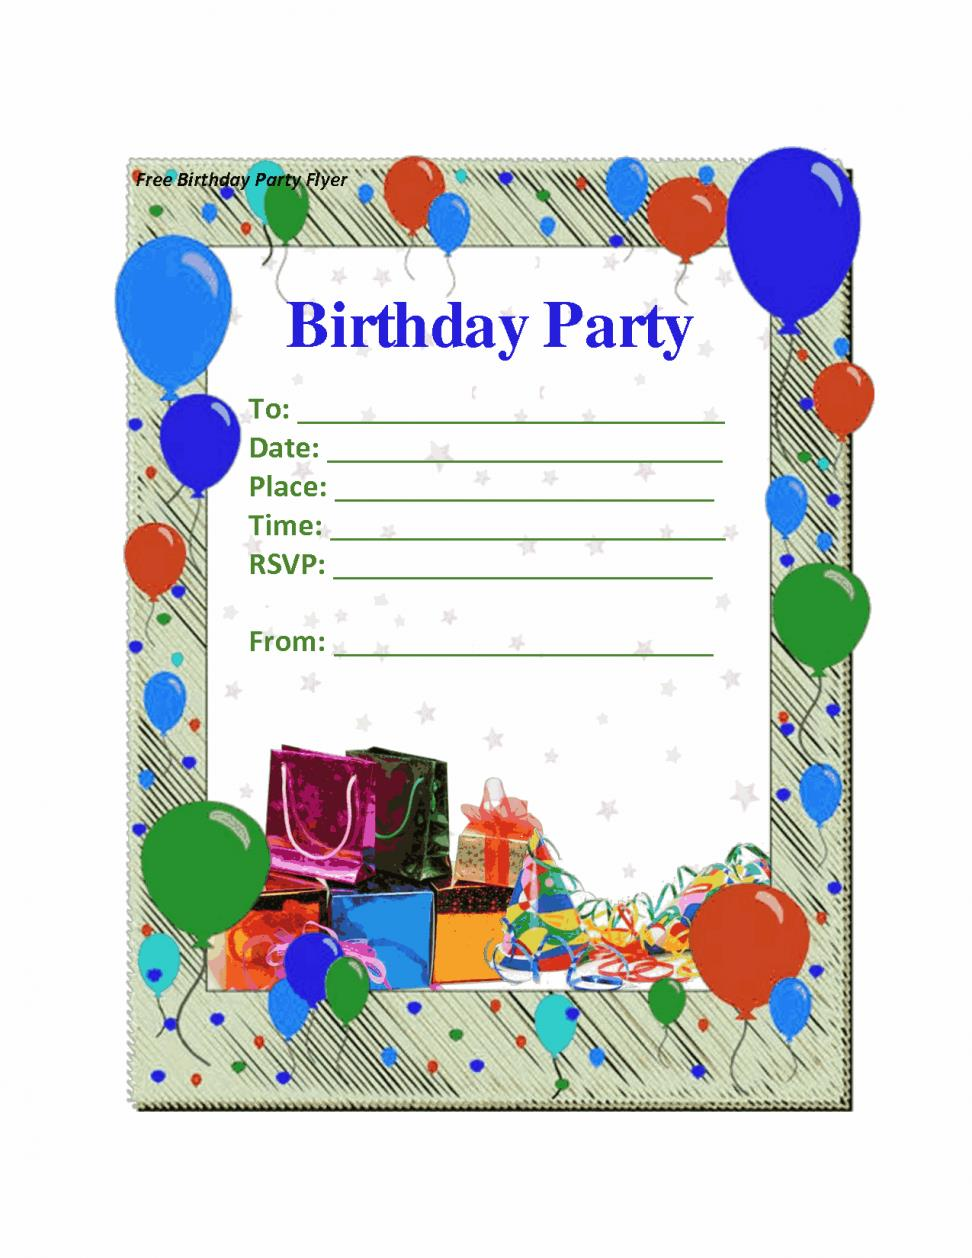 birthday party invitation template with photo ; birthday-party-invitation-maker-using-an-excellent-design-idea-aimed-to-prettify-your-Birthday-Invitation-Templates-18-972x1258